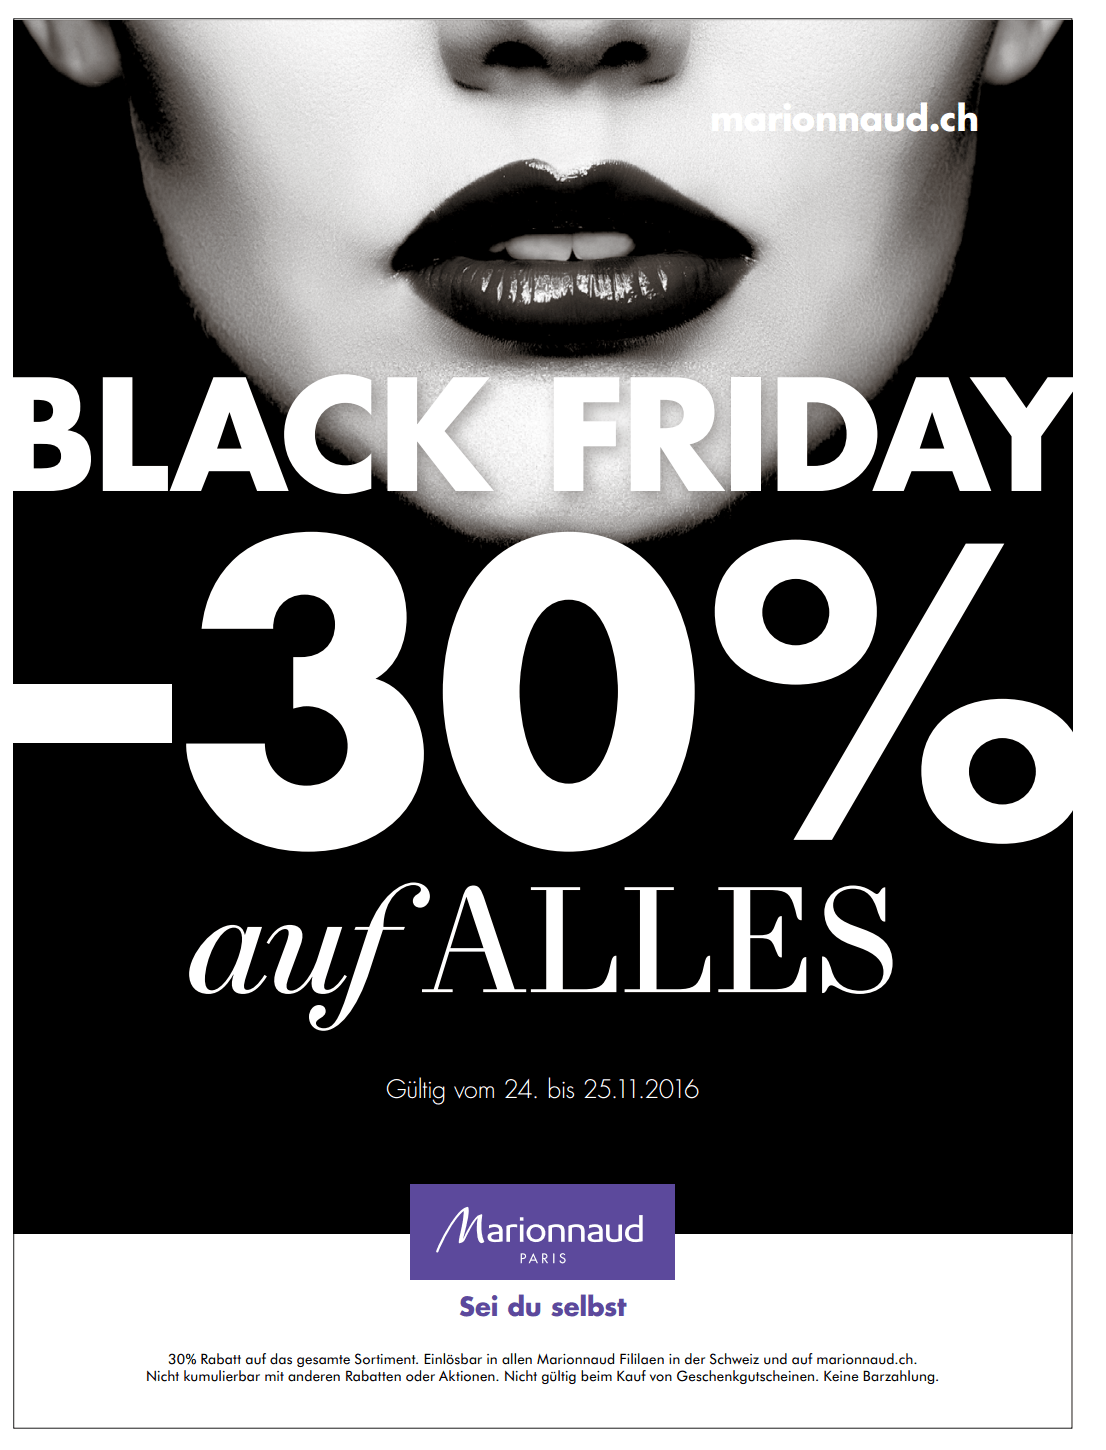 Black Friday Rabatt Marionnaud Black Friday 2019 Alle Infos Gutscheincodes